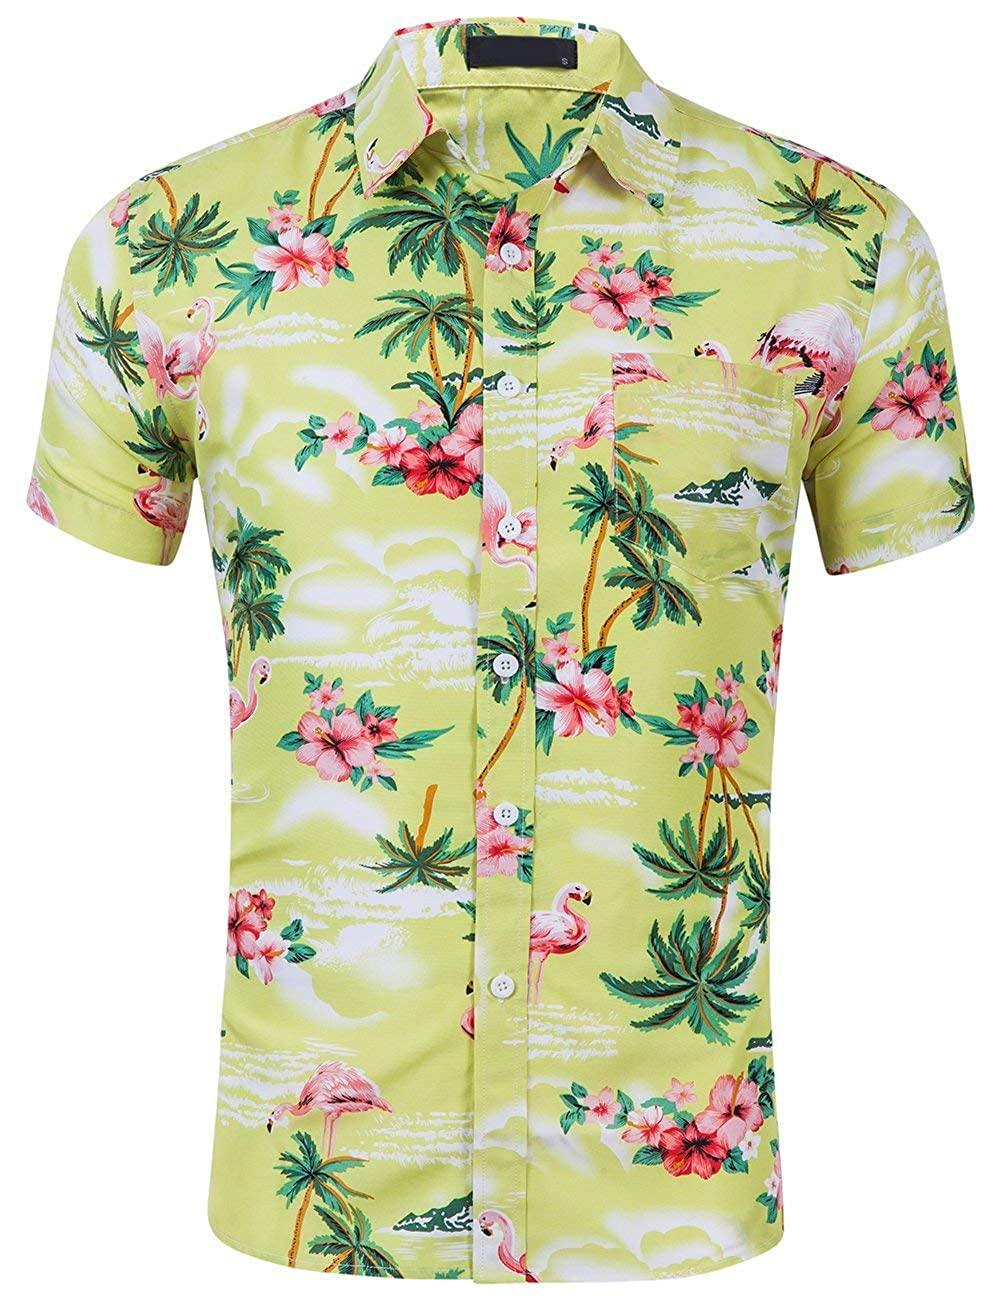 5c2e58a5f Top 10 wholesale Hawaiian Luau Outfits - Chinabrands.com